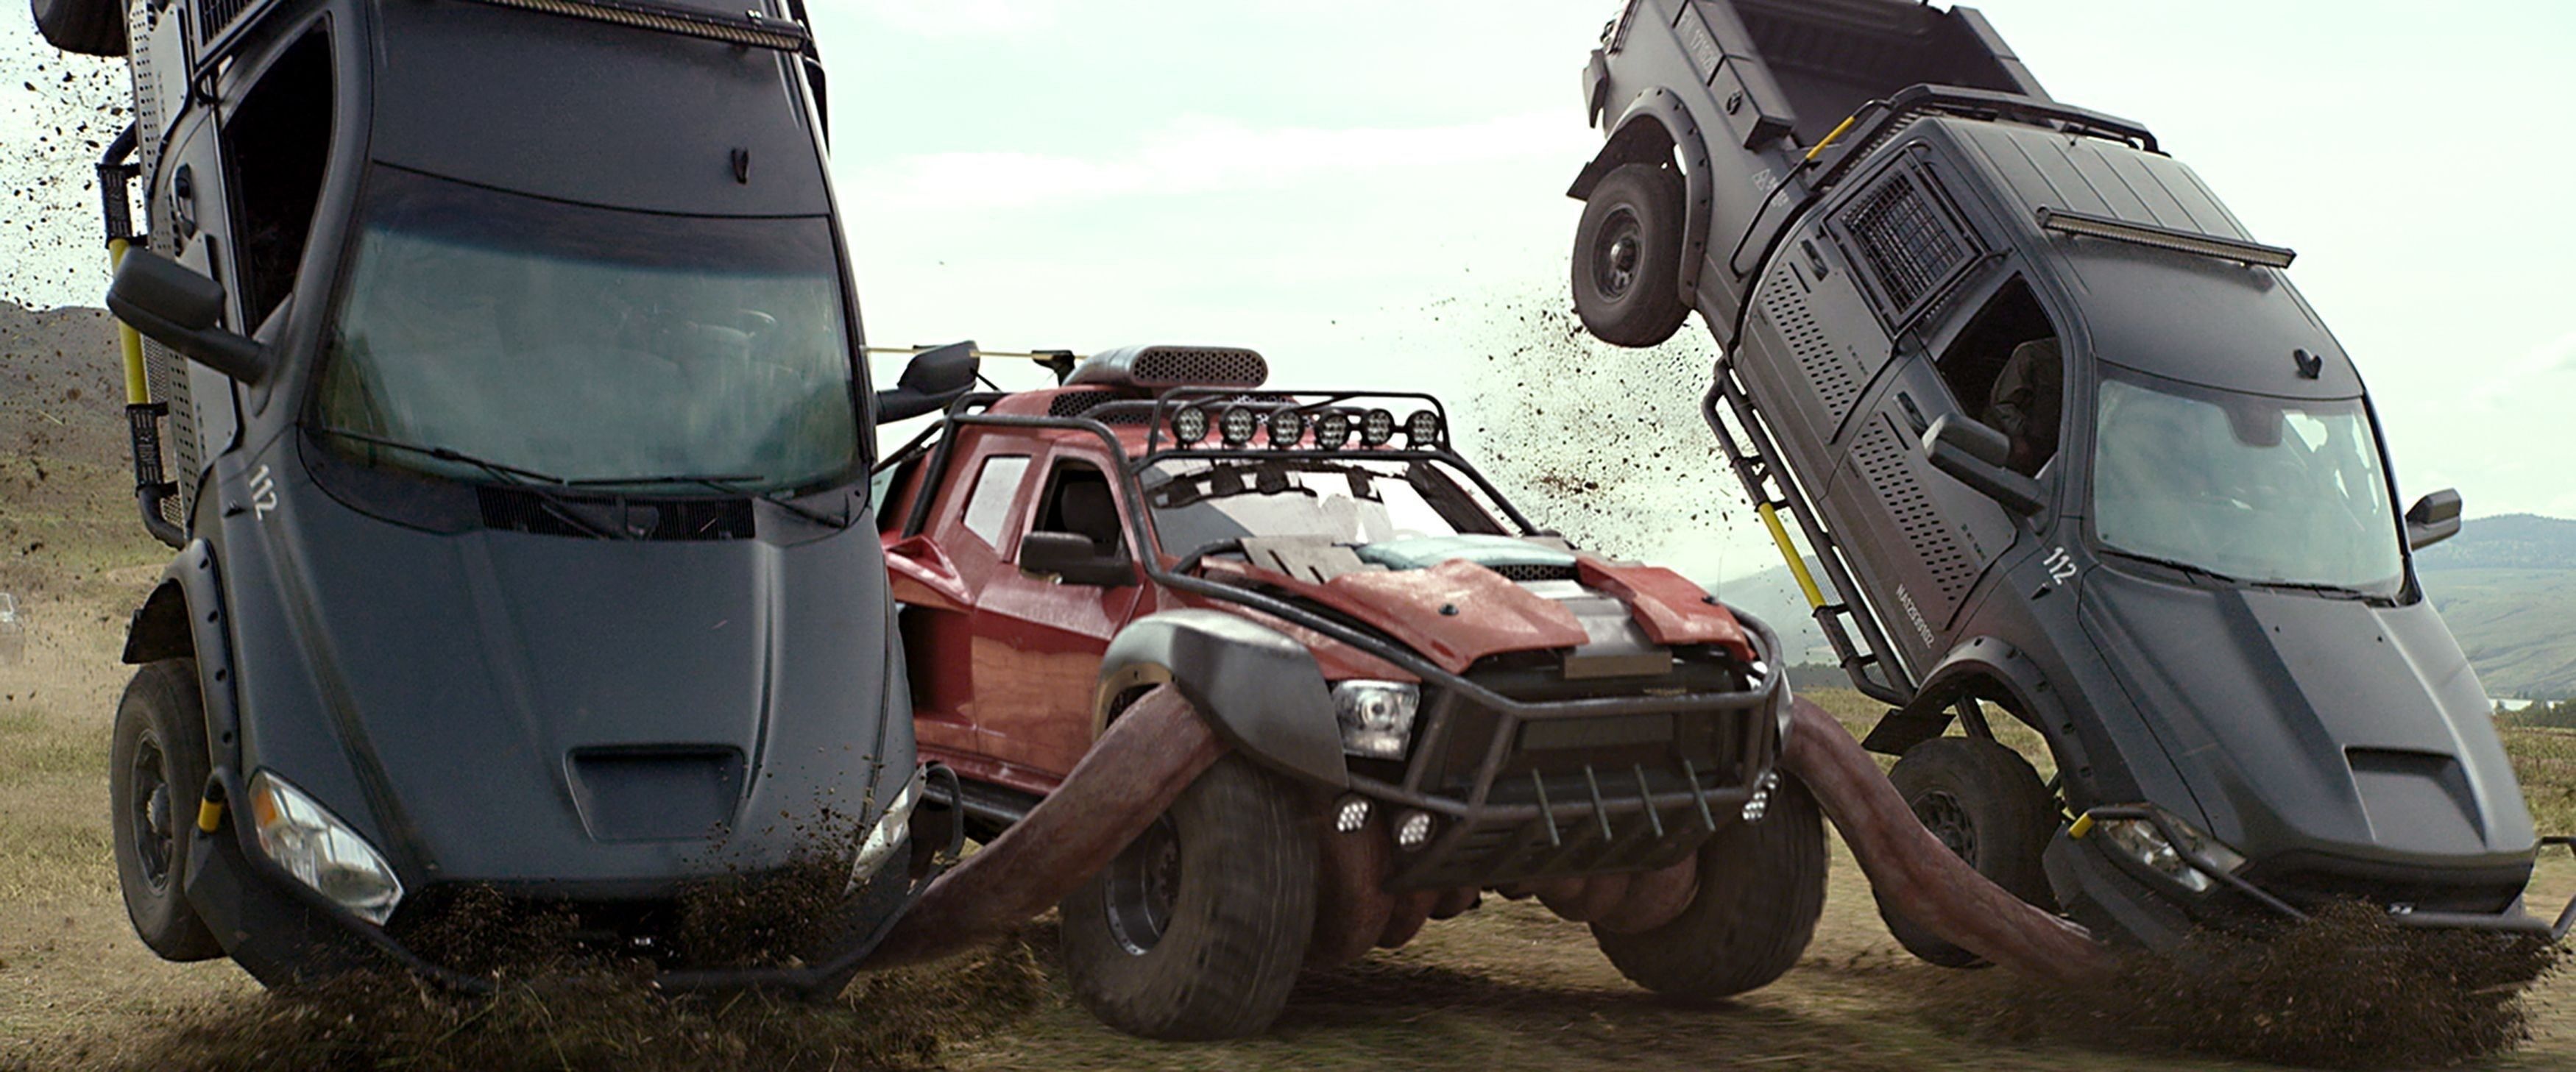 The next showings at Ellon Cinema includes Monster Trucks